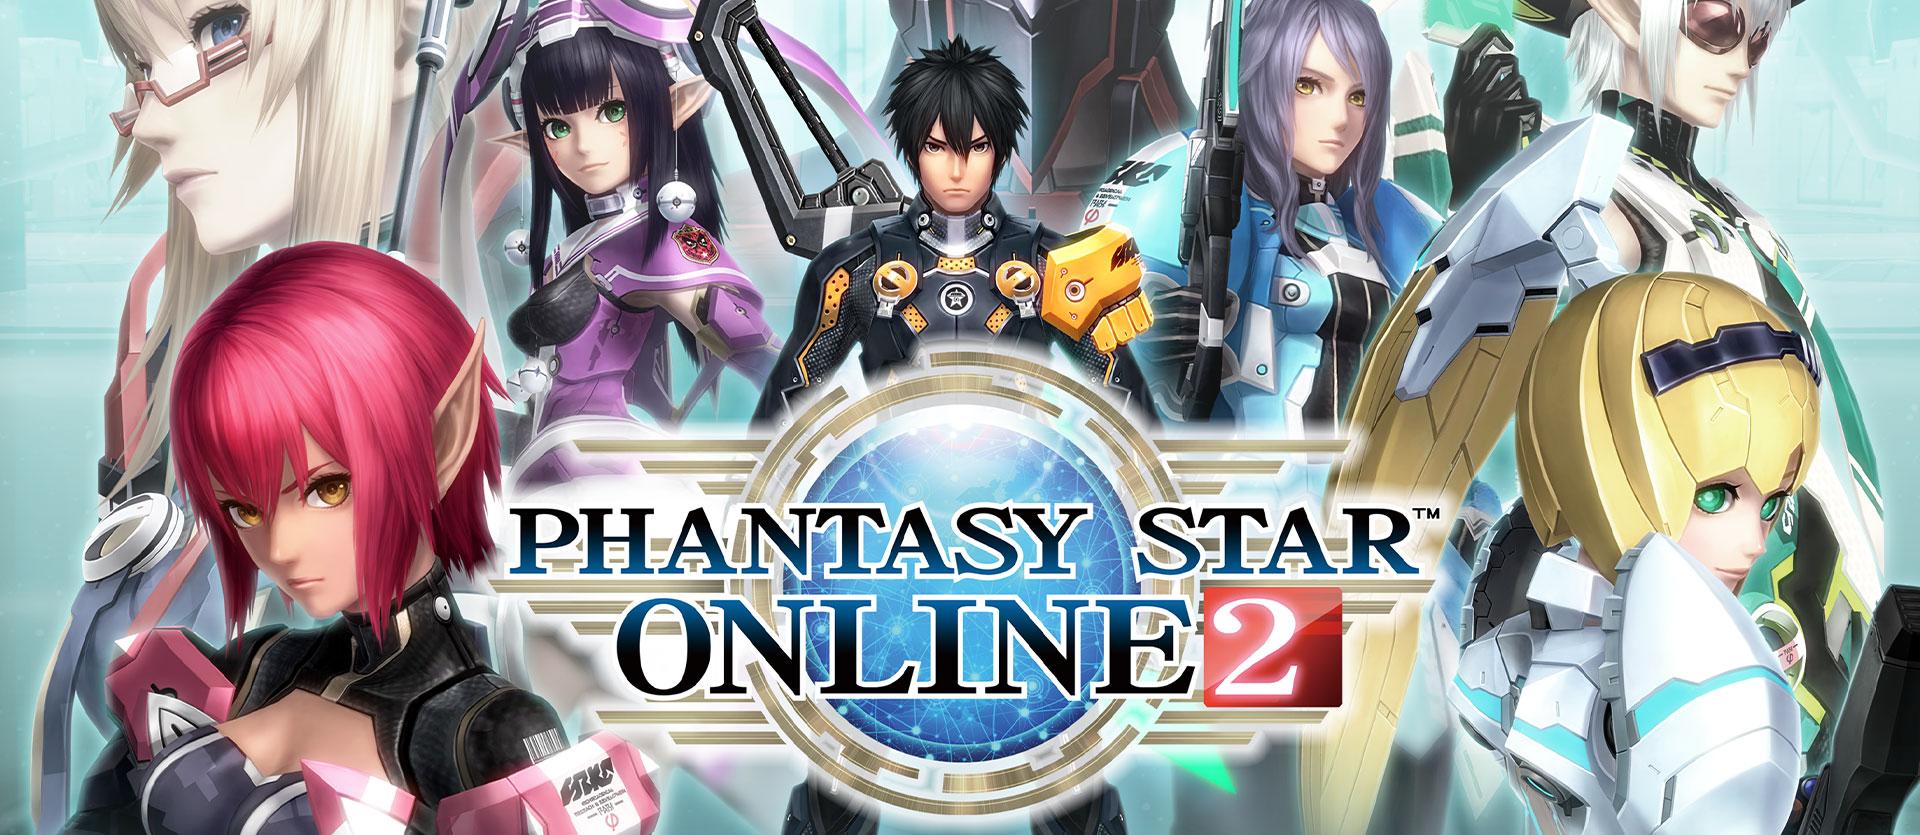 Phantasy Star Online 2, a collage of characters from the game.